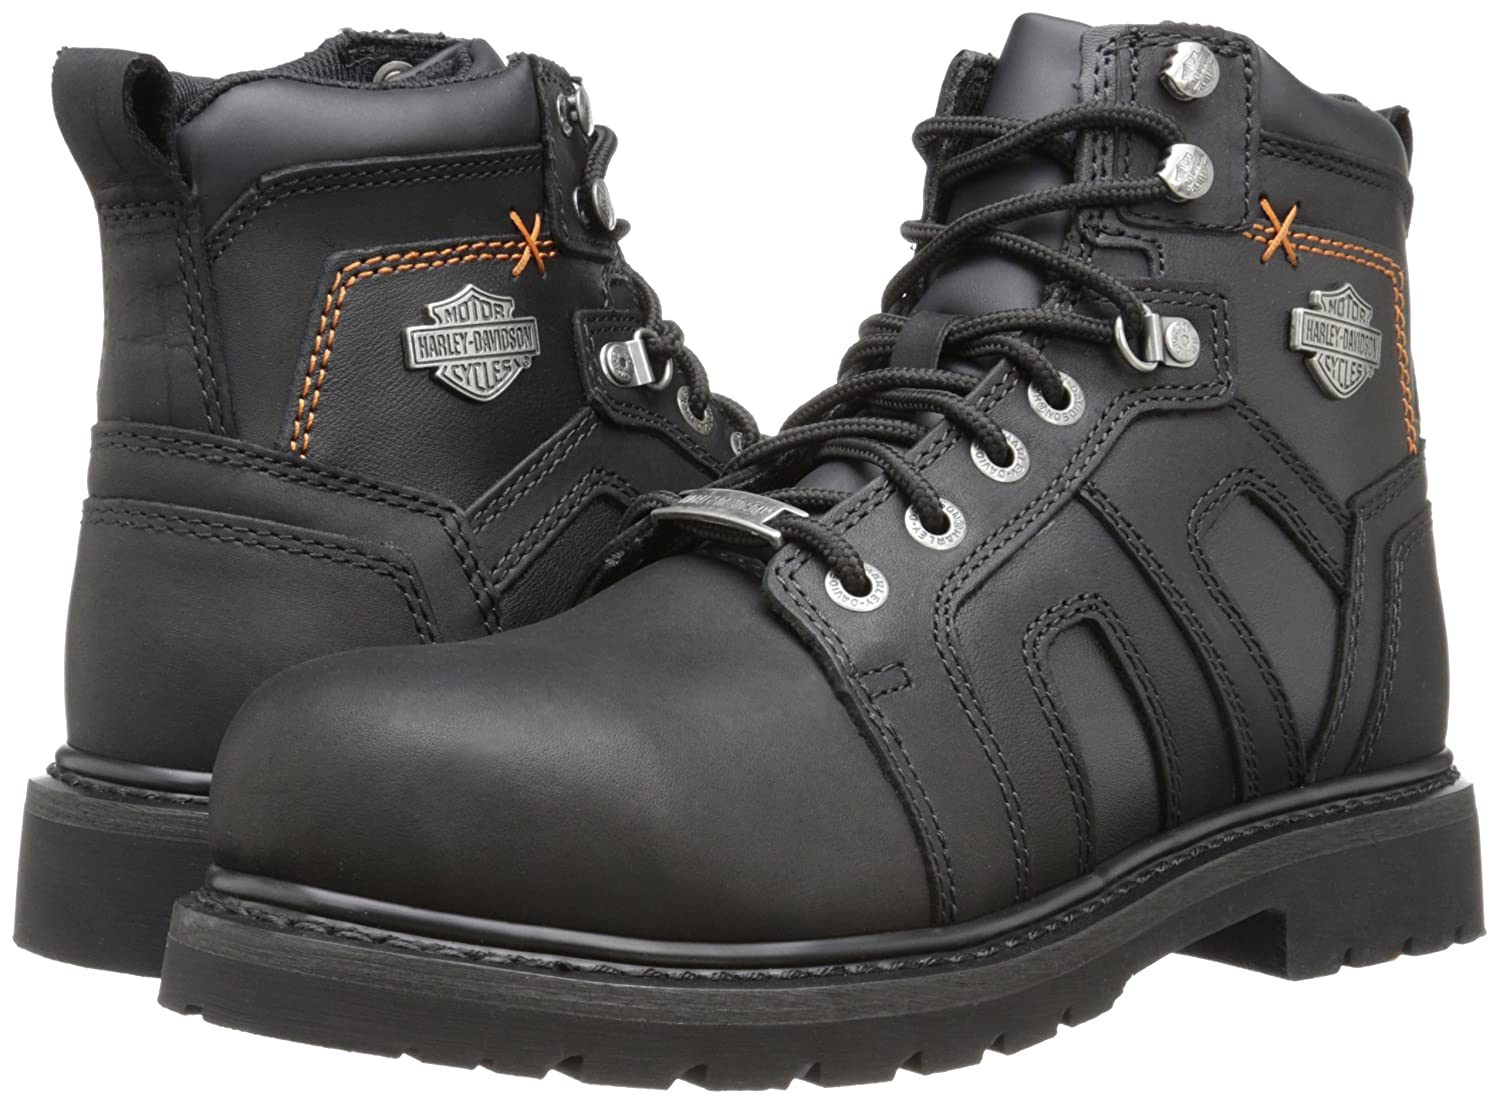 f7f63b39b58a Amazon.com  Harley-Davidson Men s Chad ST Work Boot  Harley-Davidson  Shoes